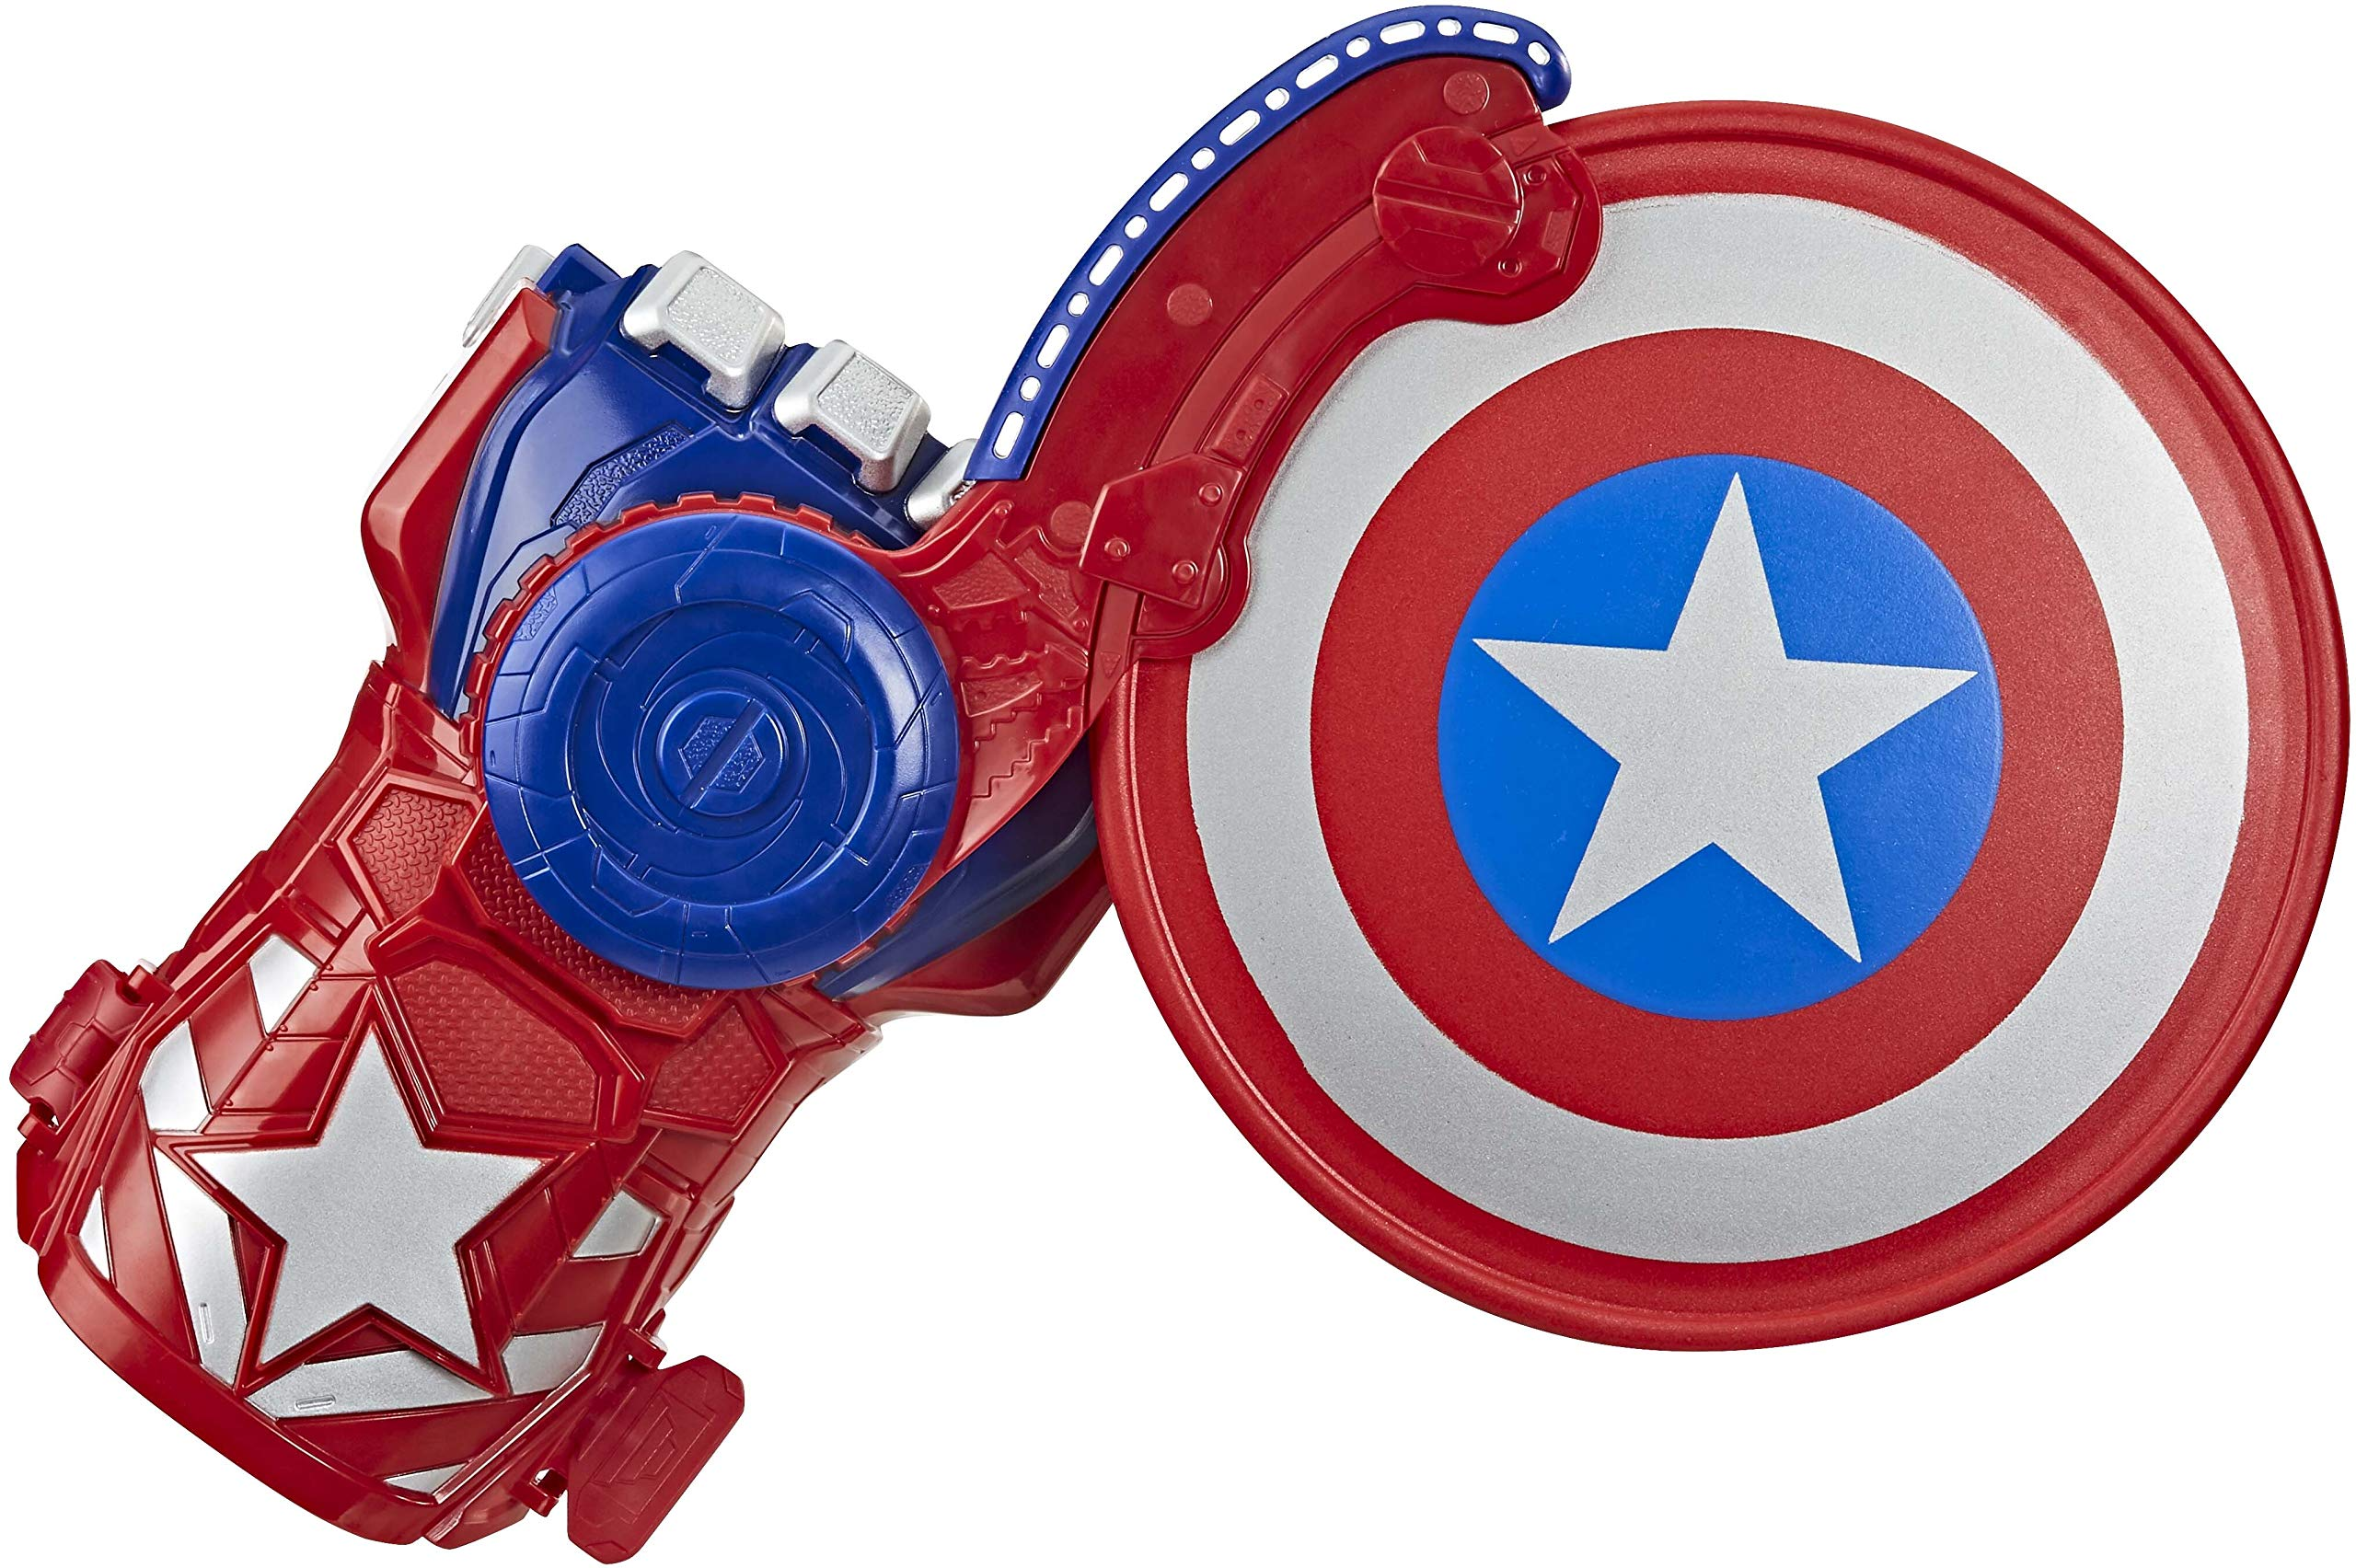 Avengers NERF Power Moves Marvel Captain America Shield Sling NERF Disc-Launching Toy for Kids Roleplay, Toys for Kids Ages 5 and Up